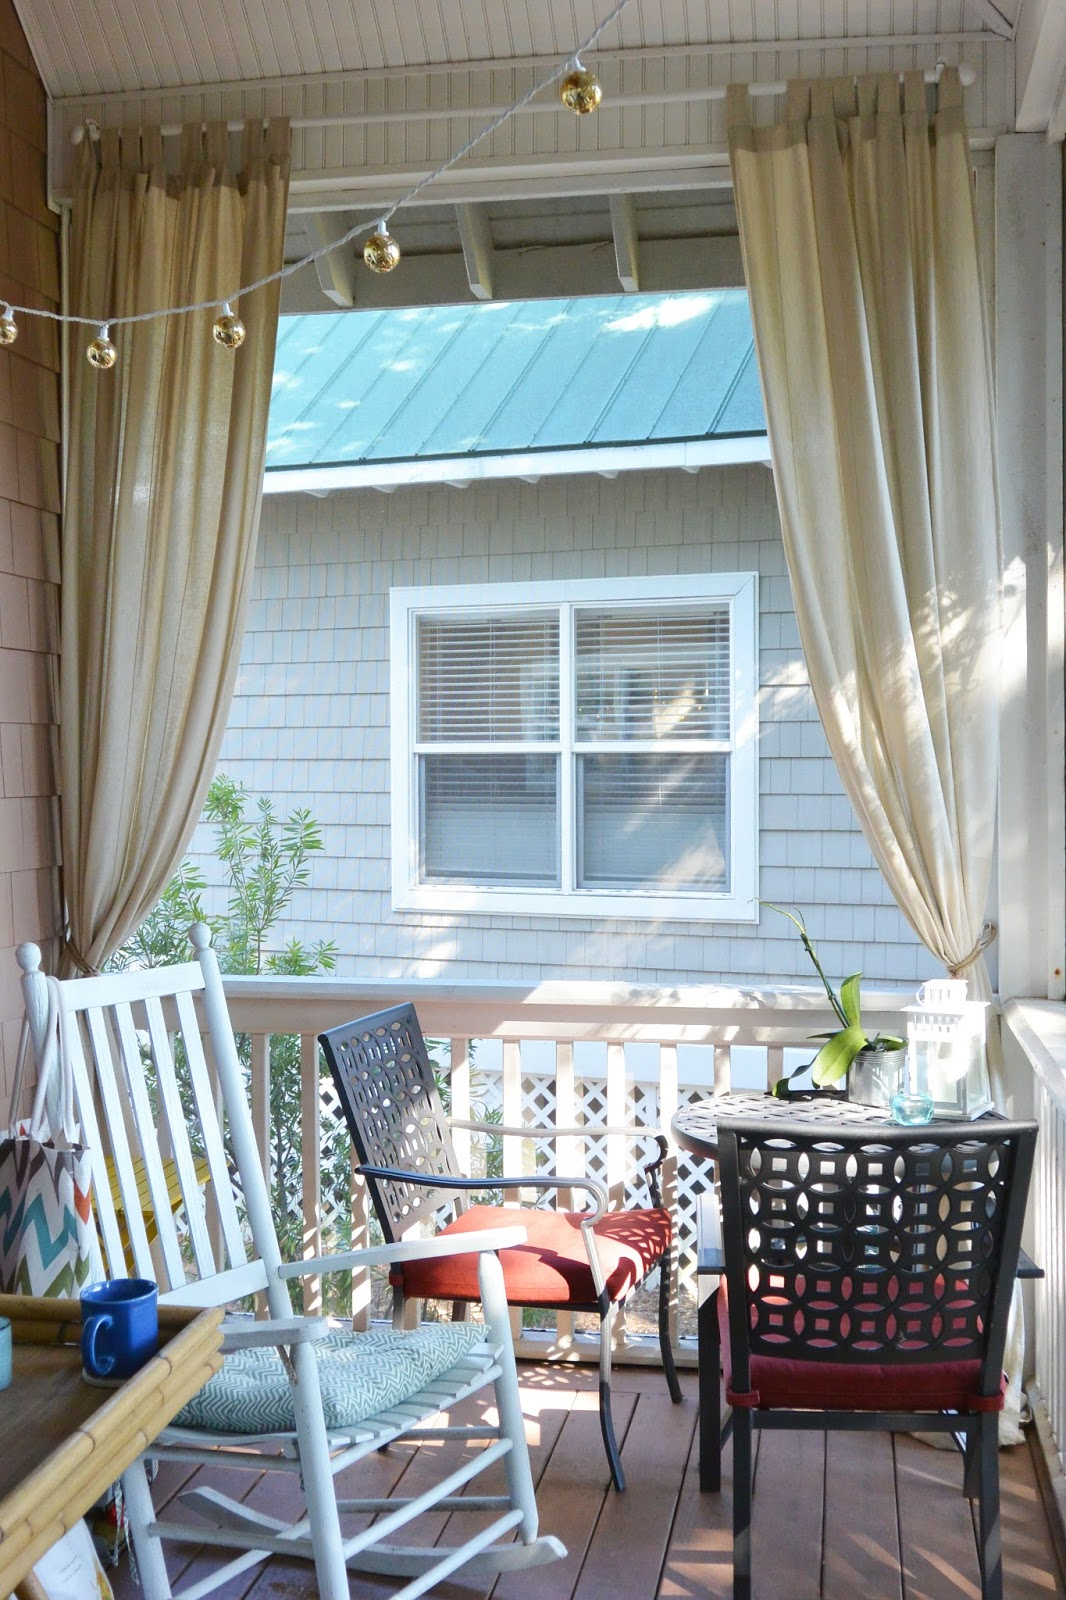 Outdoor Curtains And Diy Rope Curtain Tie Backs